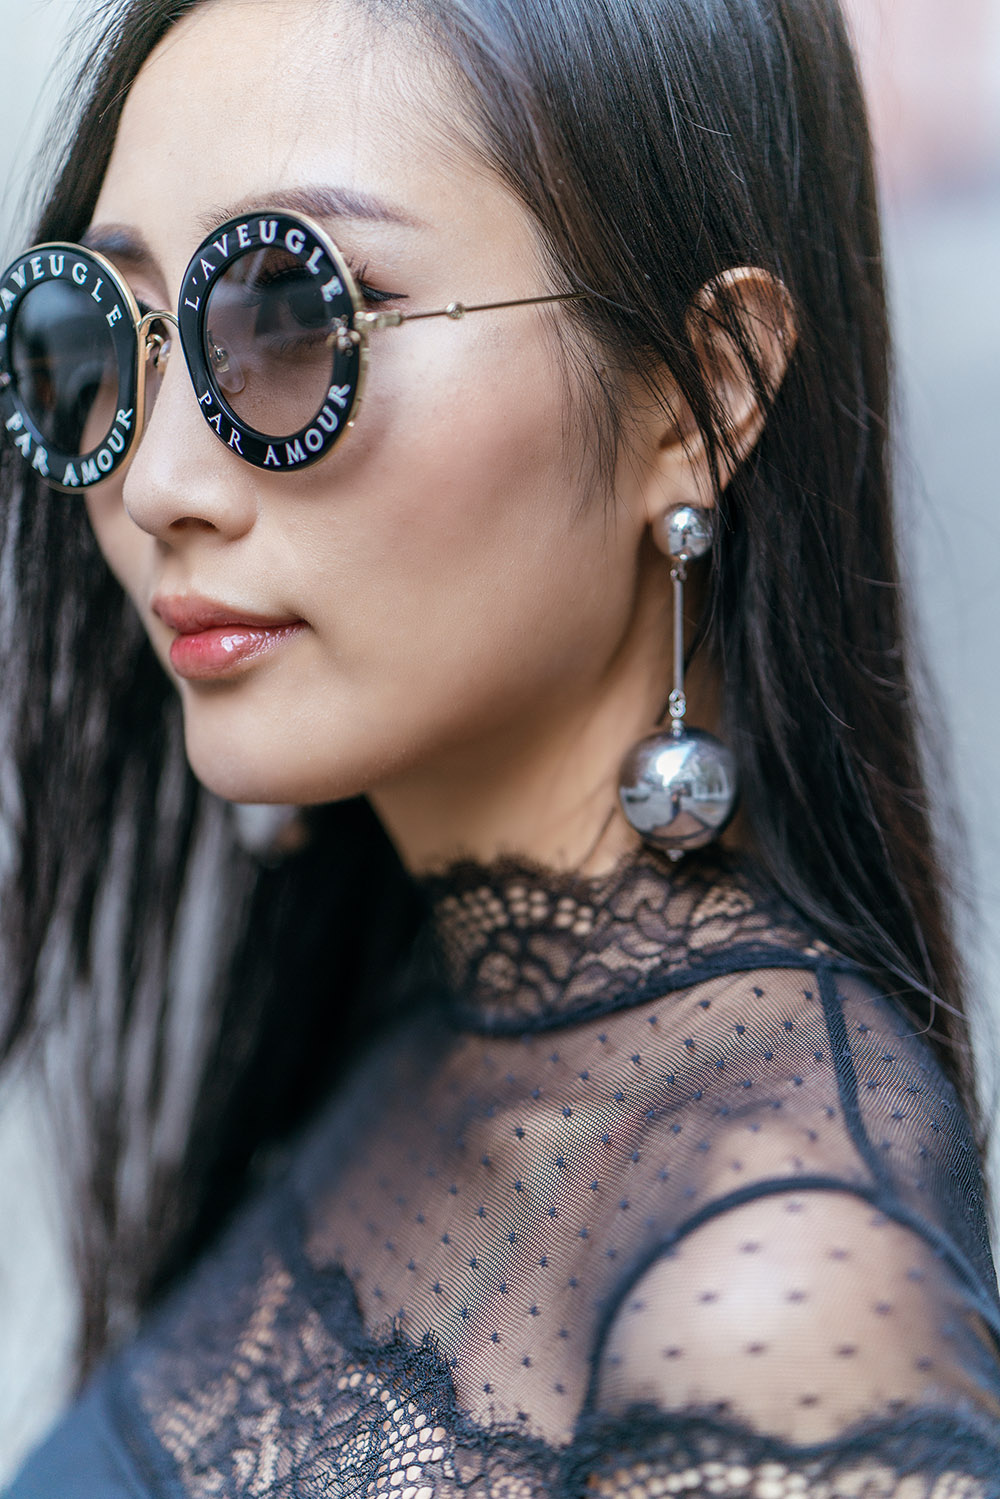 How To Wear Mules This Fall | Of Leather and Lace - A Fashion & Travel Blog by Tina Lee | Thistle & Spire Lace Bodysuit, Cult Gaia Bag, Gucci Round Sunglasses